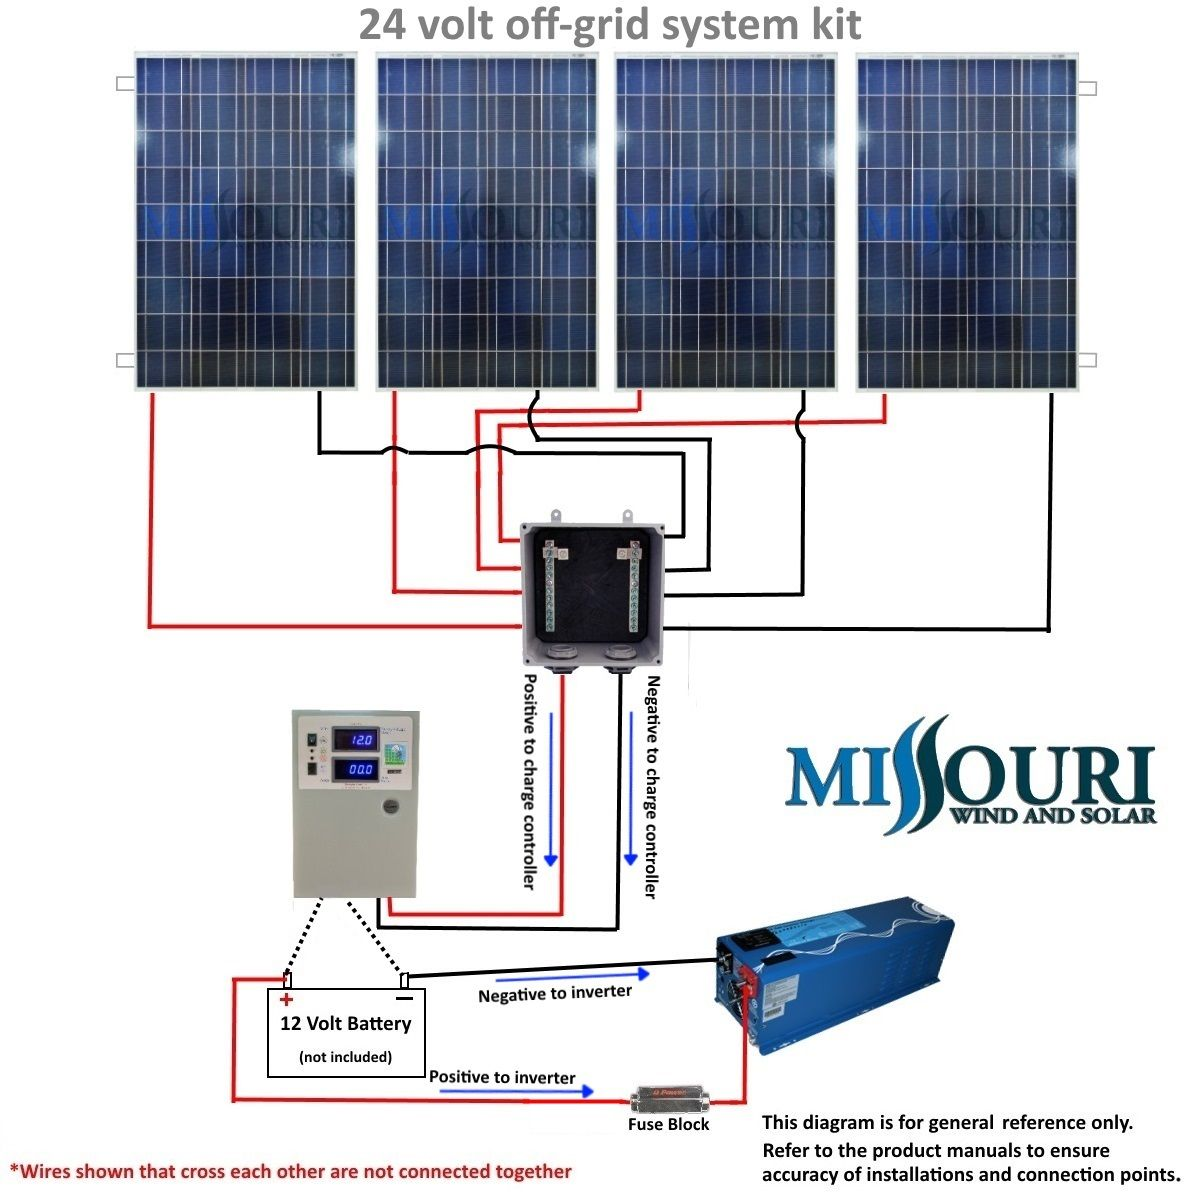 5171090152da89062e47bbf09bc92c93 1000 watt 24 volt off grid solar panel kit solar pinterest  at readyjetset.co